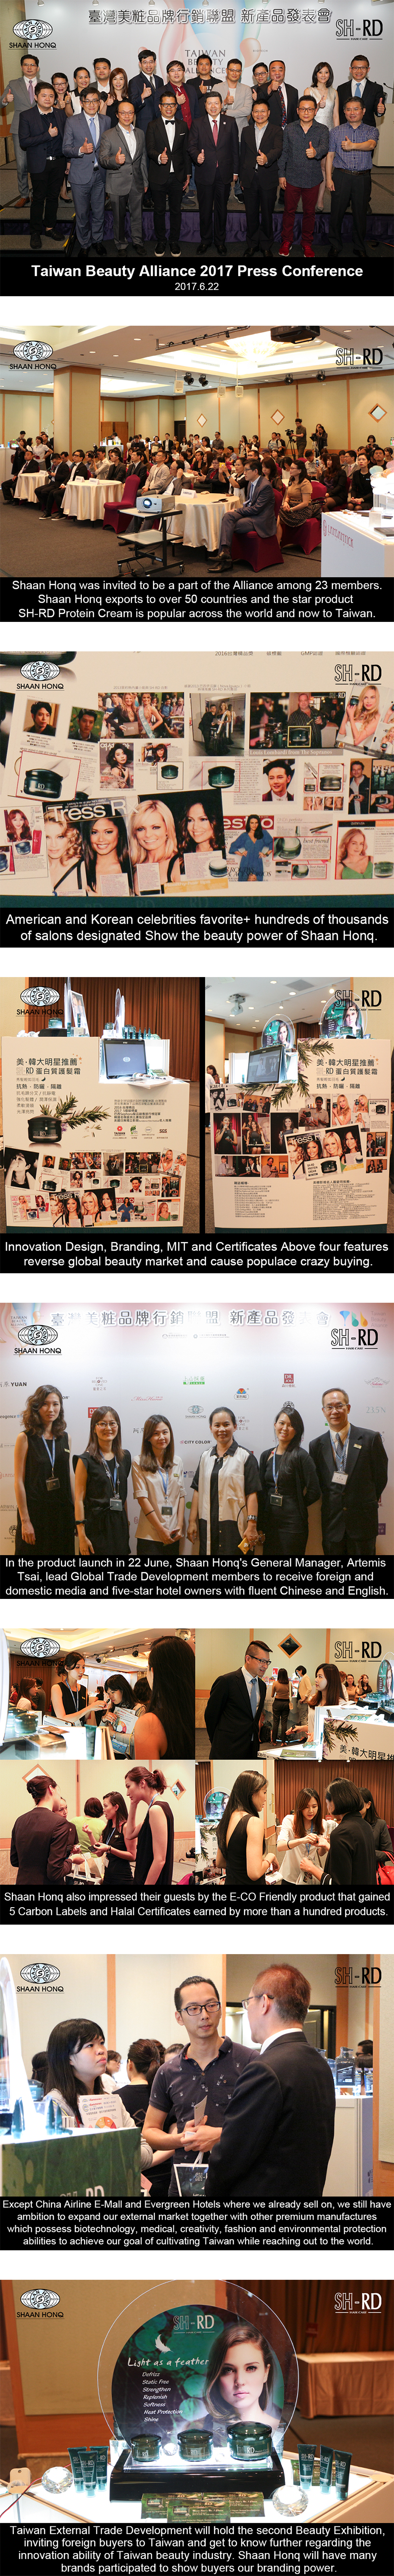 Taiwan Beauty Alliance 2017 Press Conferenc